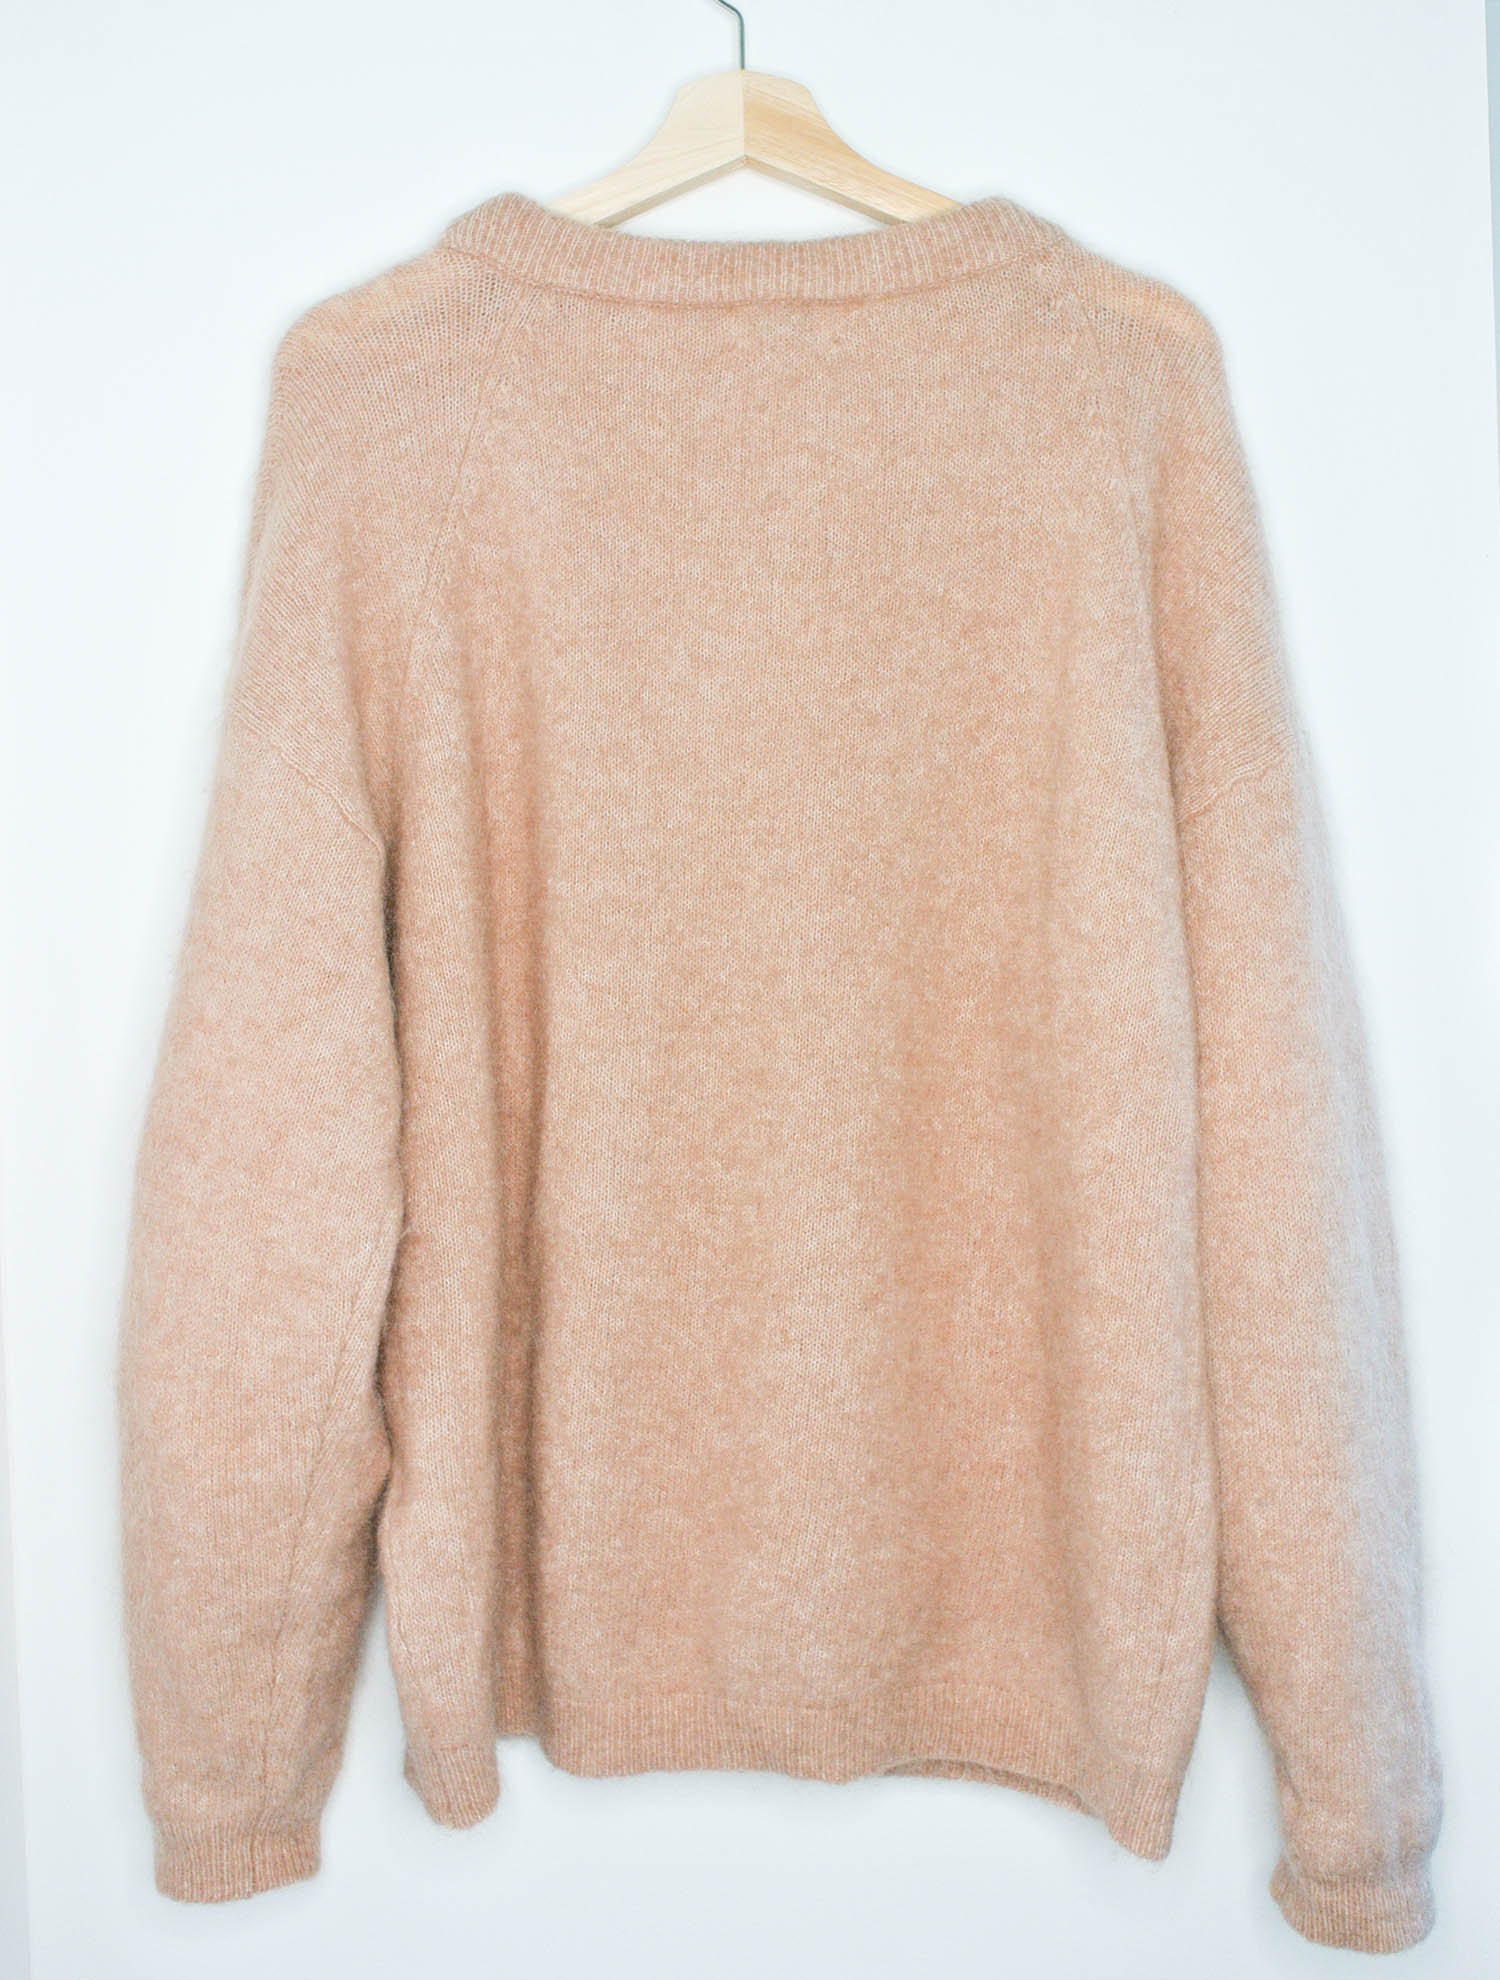 Acne Studios Dramatic Moh Crew Neck Sweater Sz Small